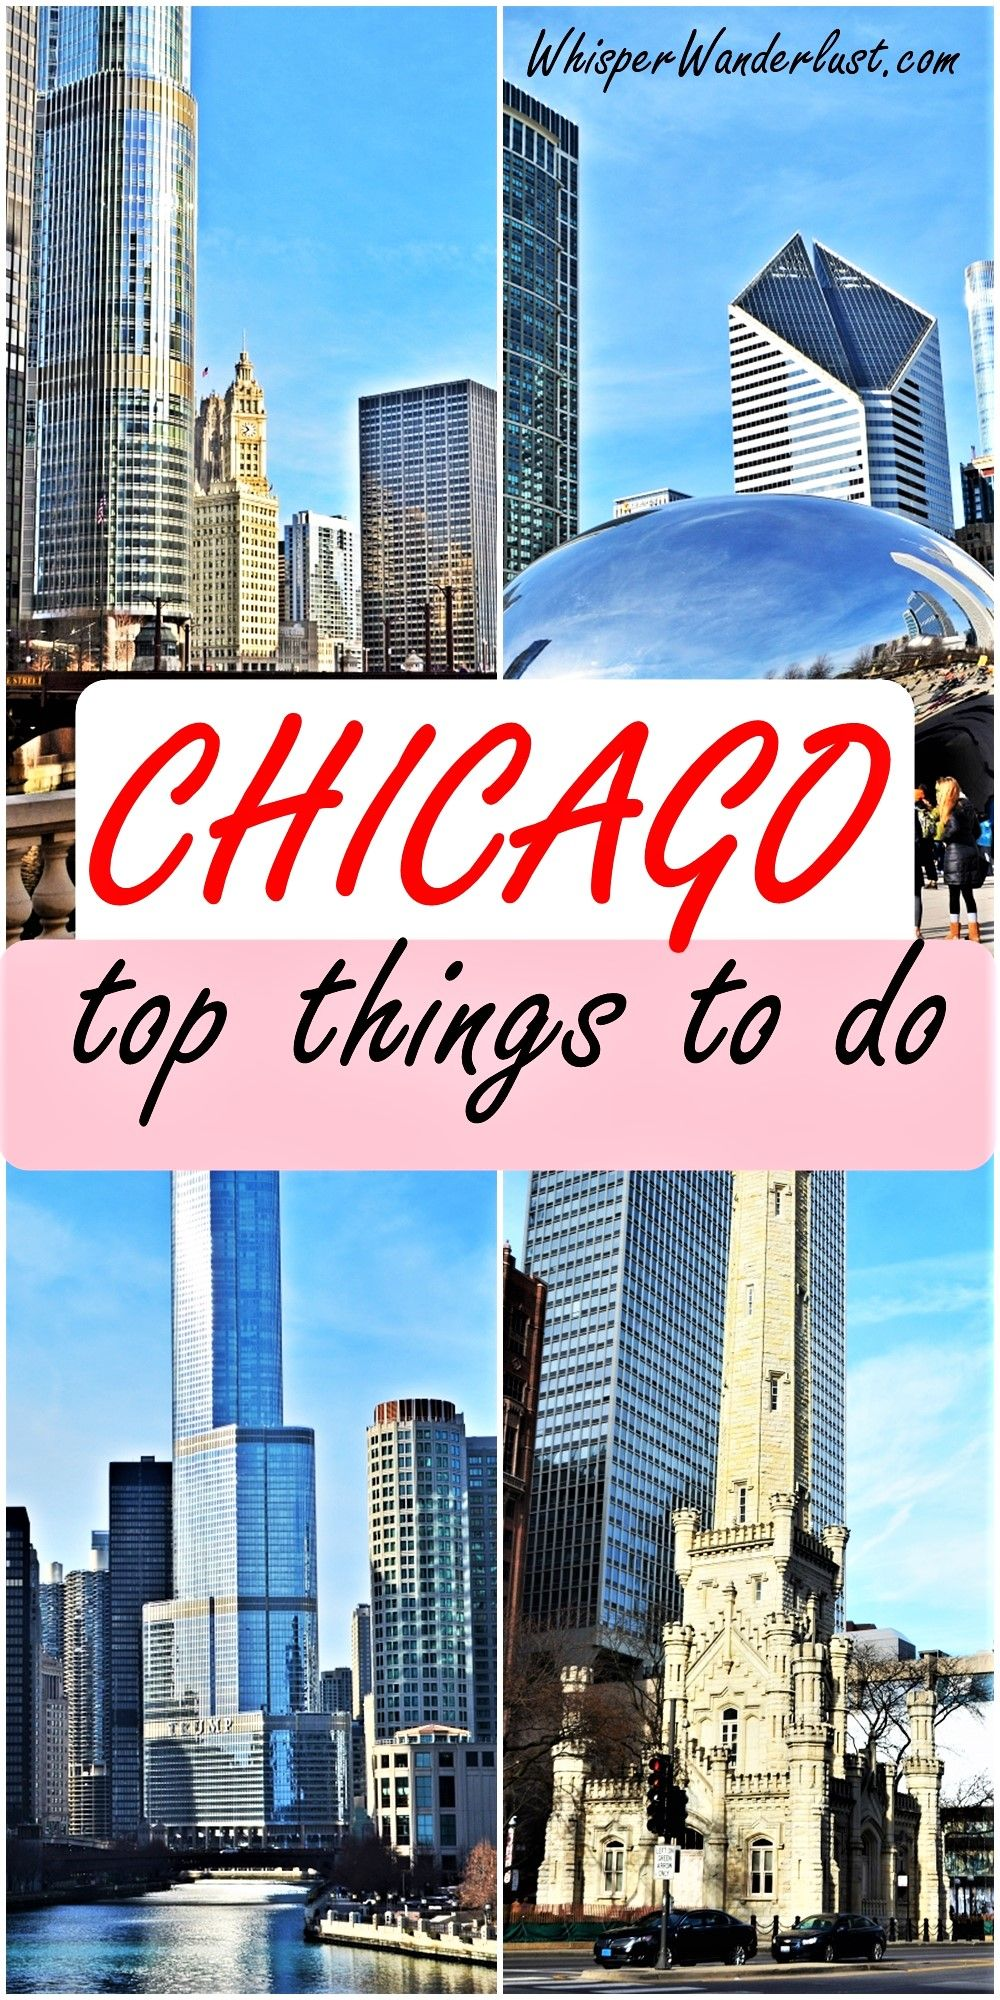 Exploring Chicago was a lot of fun! I loved the architecture of the buildings, the clean streets, the beautifully designed parks, but I guess my favorite was the Riverwalk. #chicago #chicagousa #travelchicago #chicagoskyline | best things to do in chicago | usa | chicago aesthetic | chicago itinerary | chicago travel guide | chicago photography